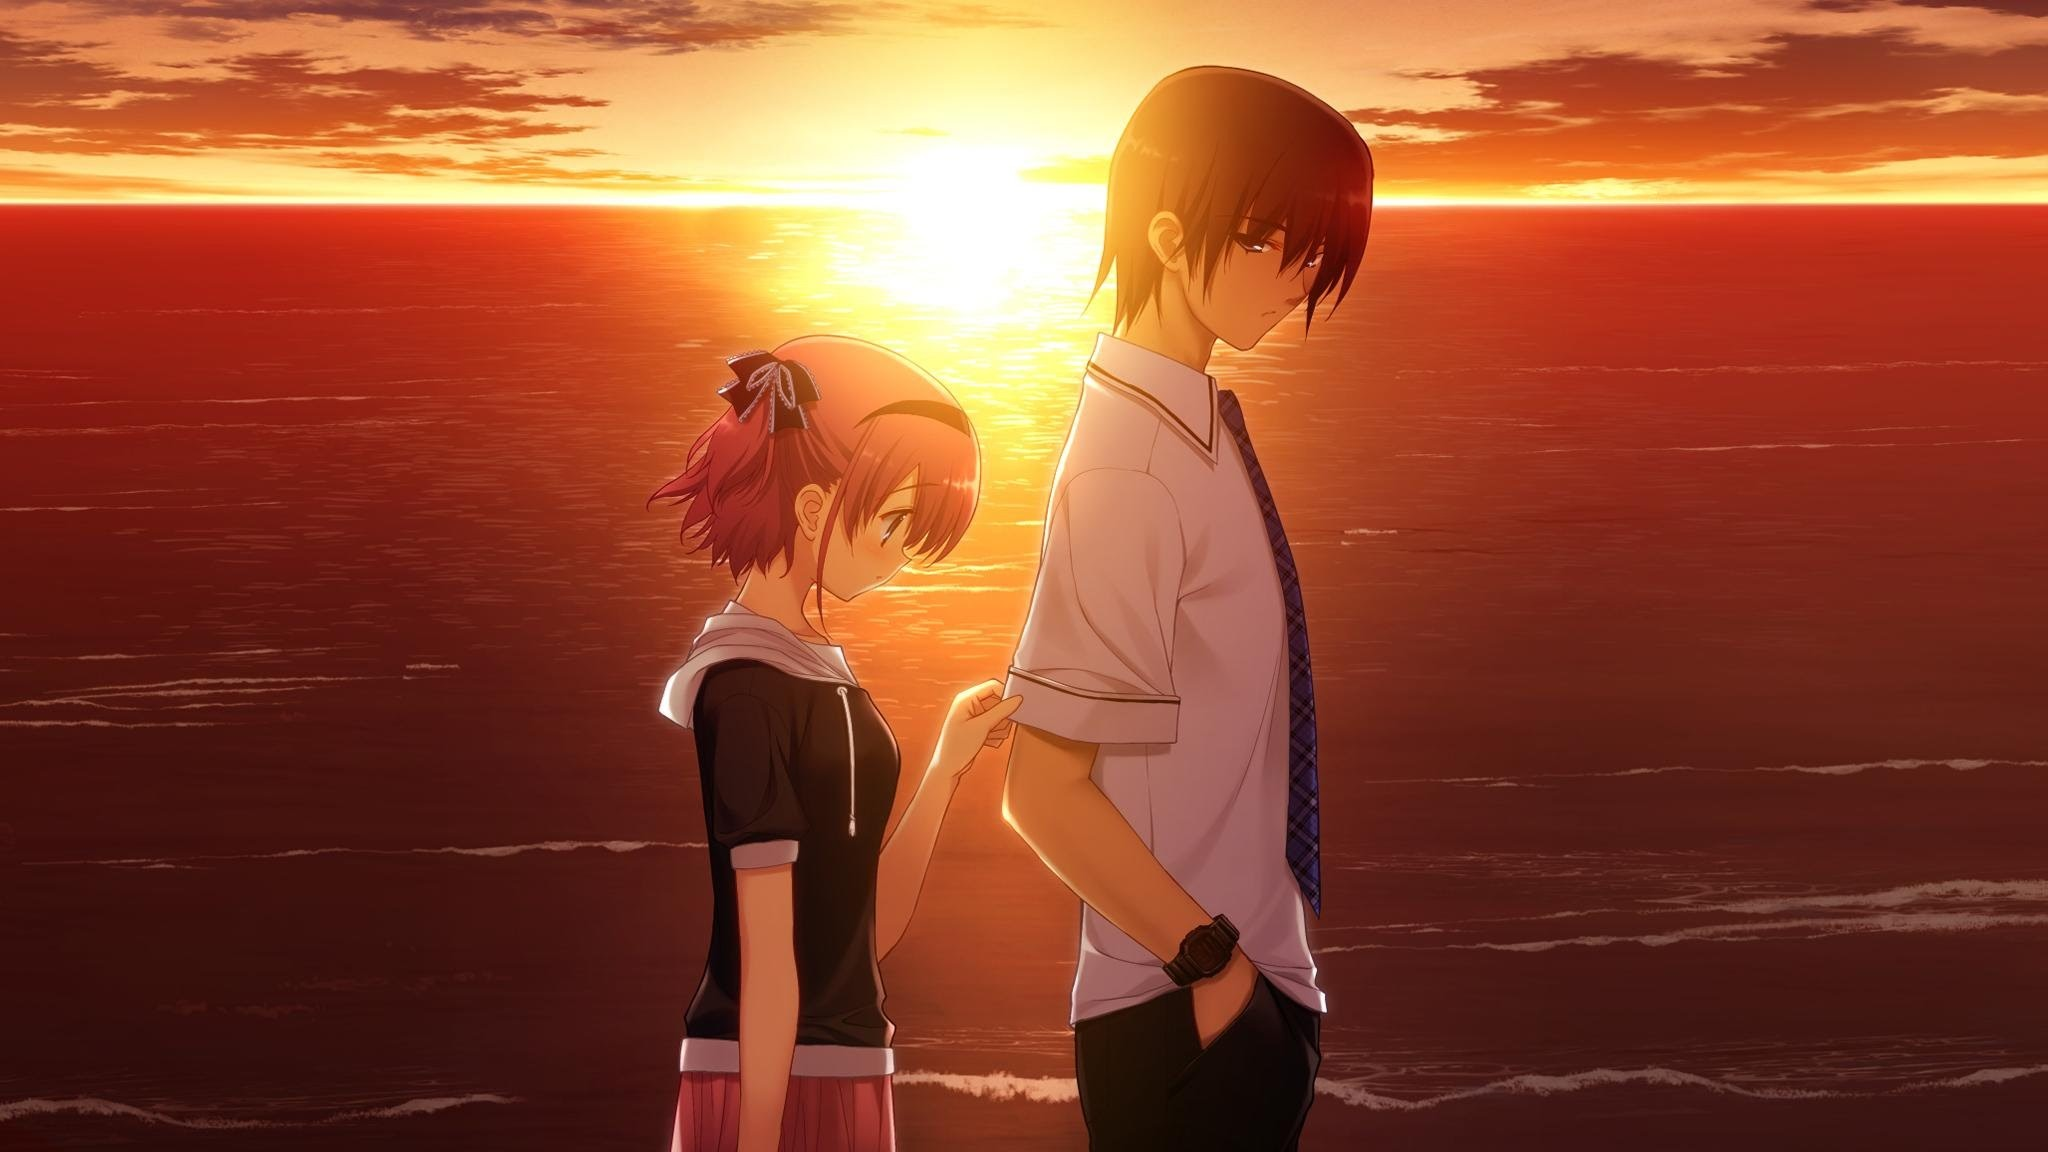 Anime Images Wallpaper Love Couples Couple Hd Wallpaper: Sad Anime Wallpaper (64+ Images